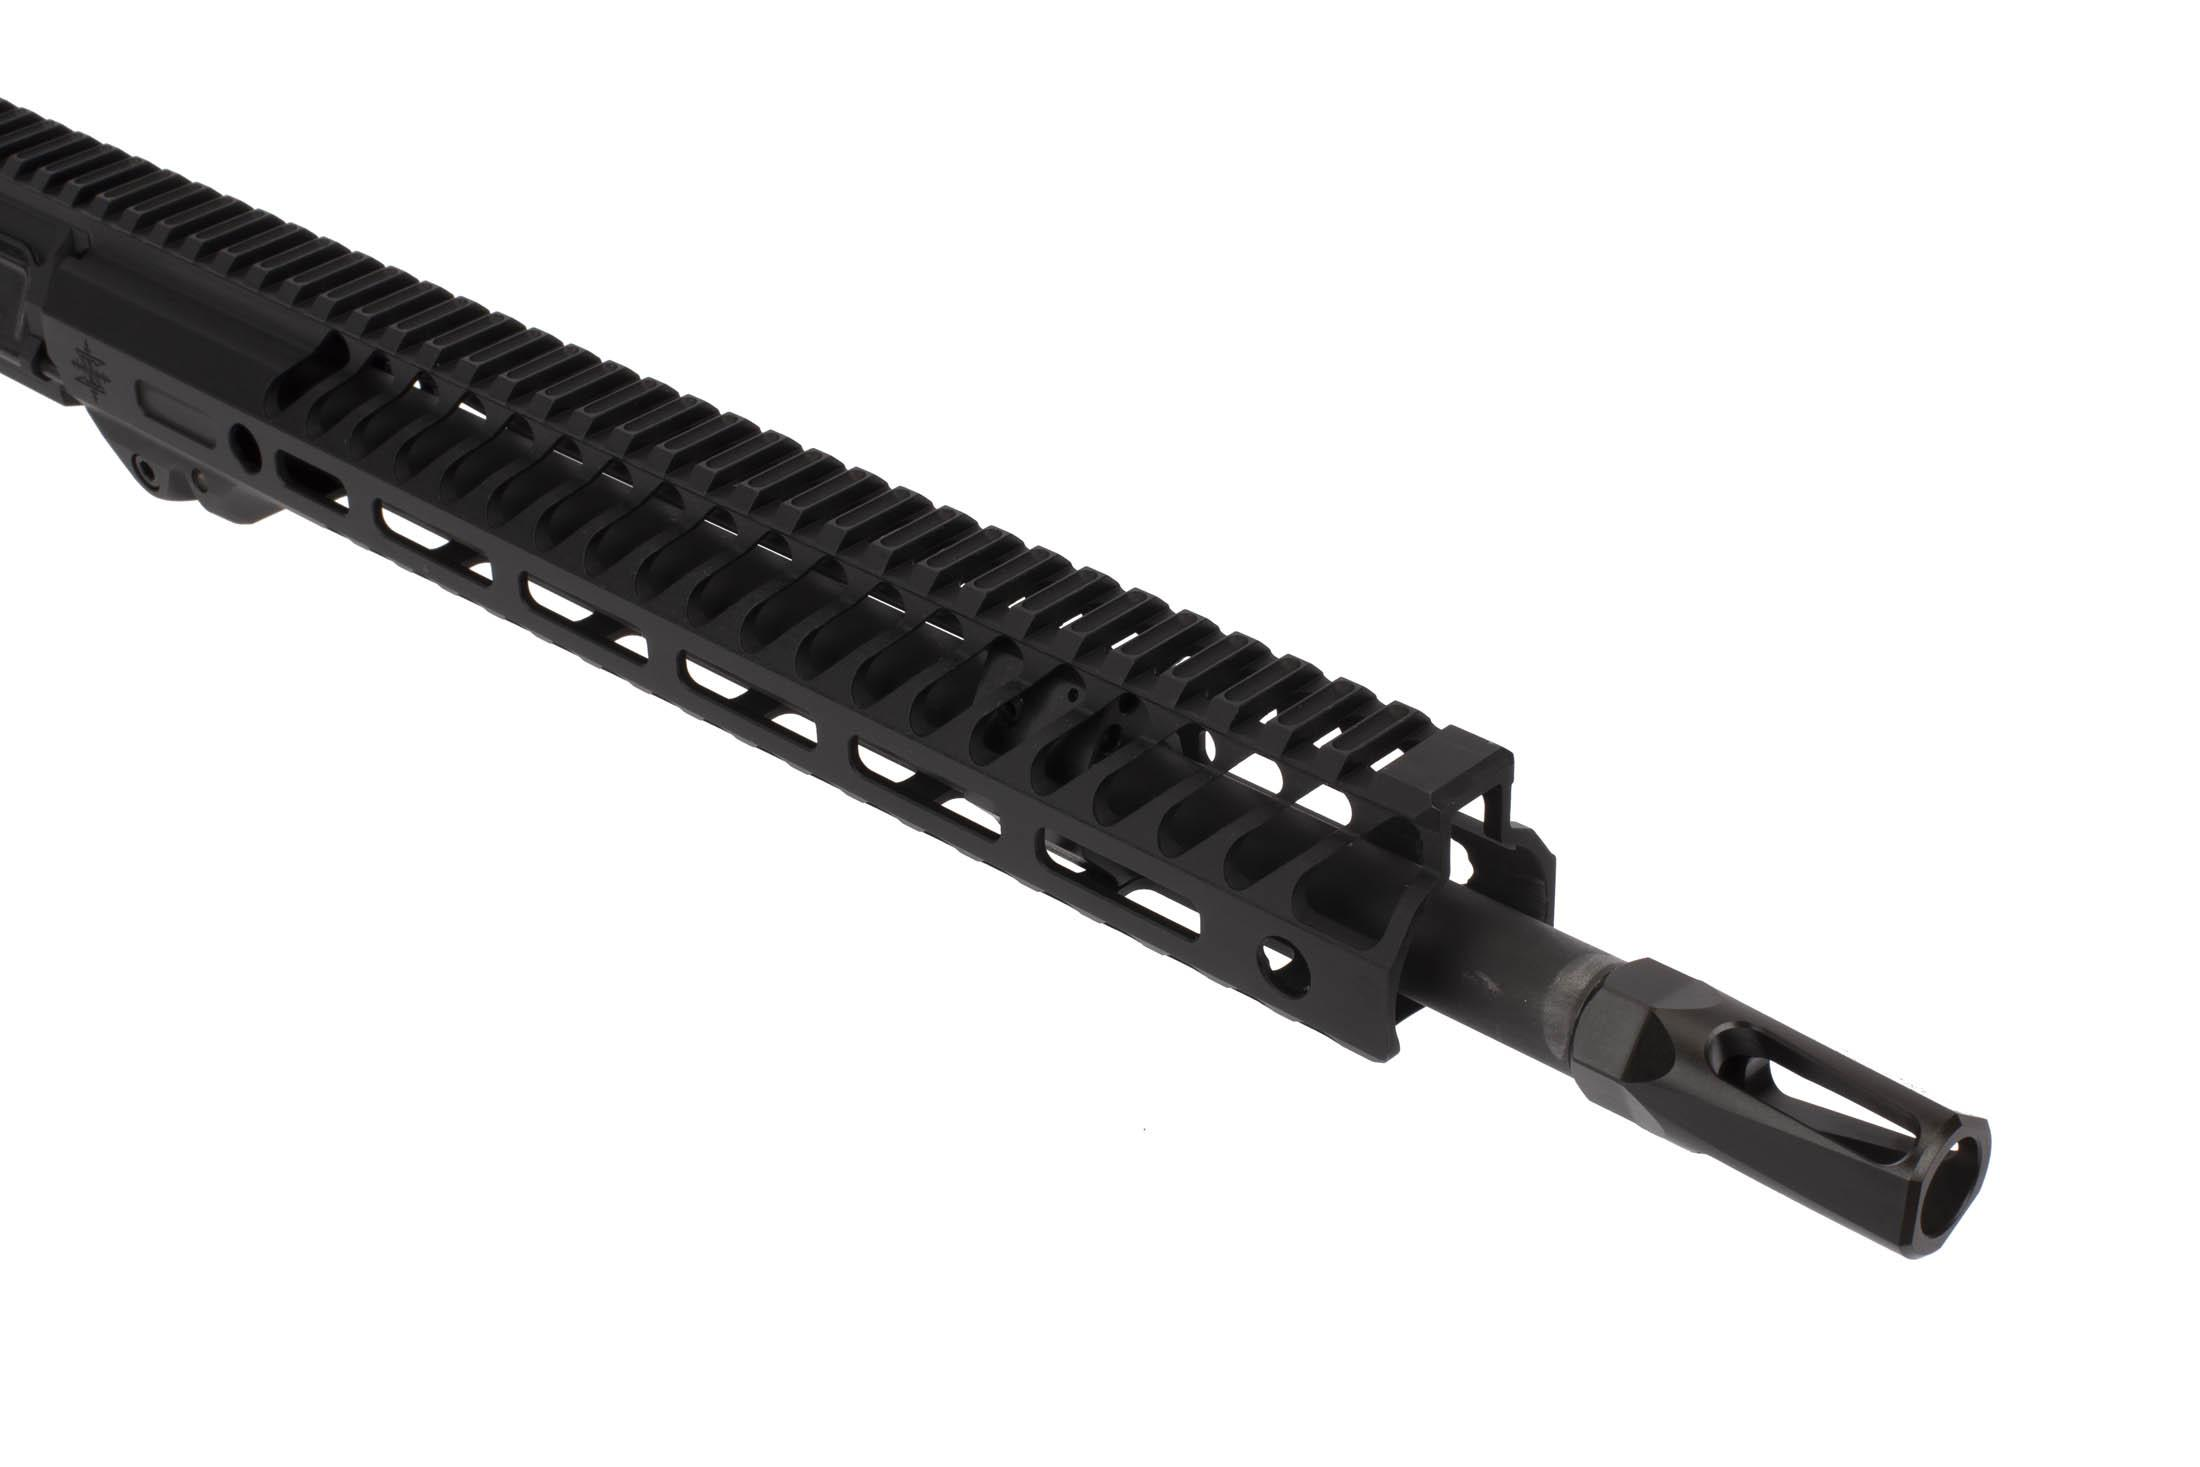 The Seekins Precision 14.5 NX14 includes a Rook Flash Hider